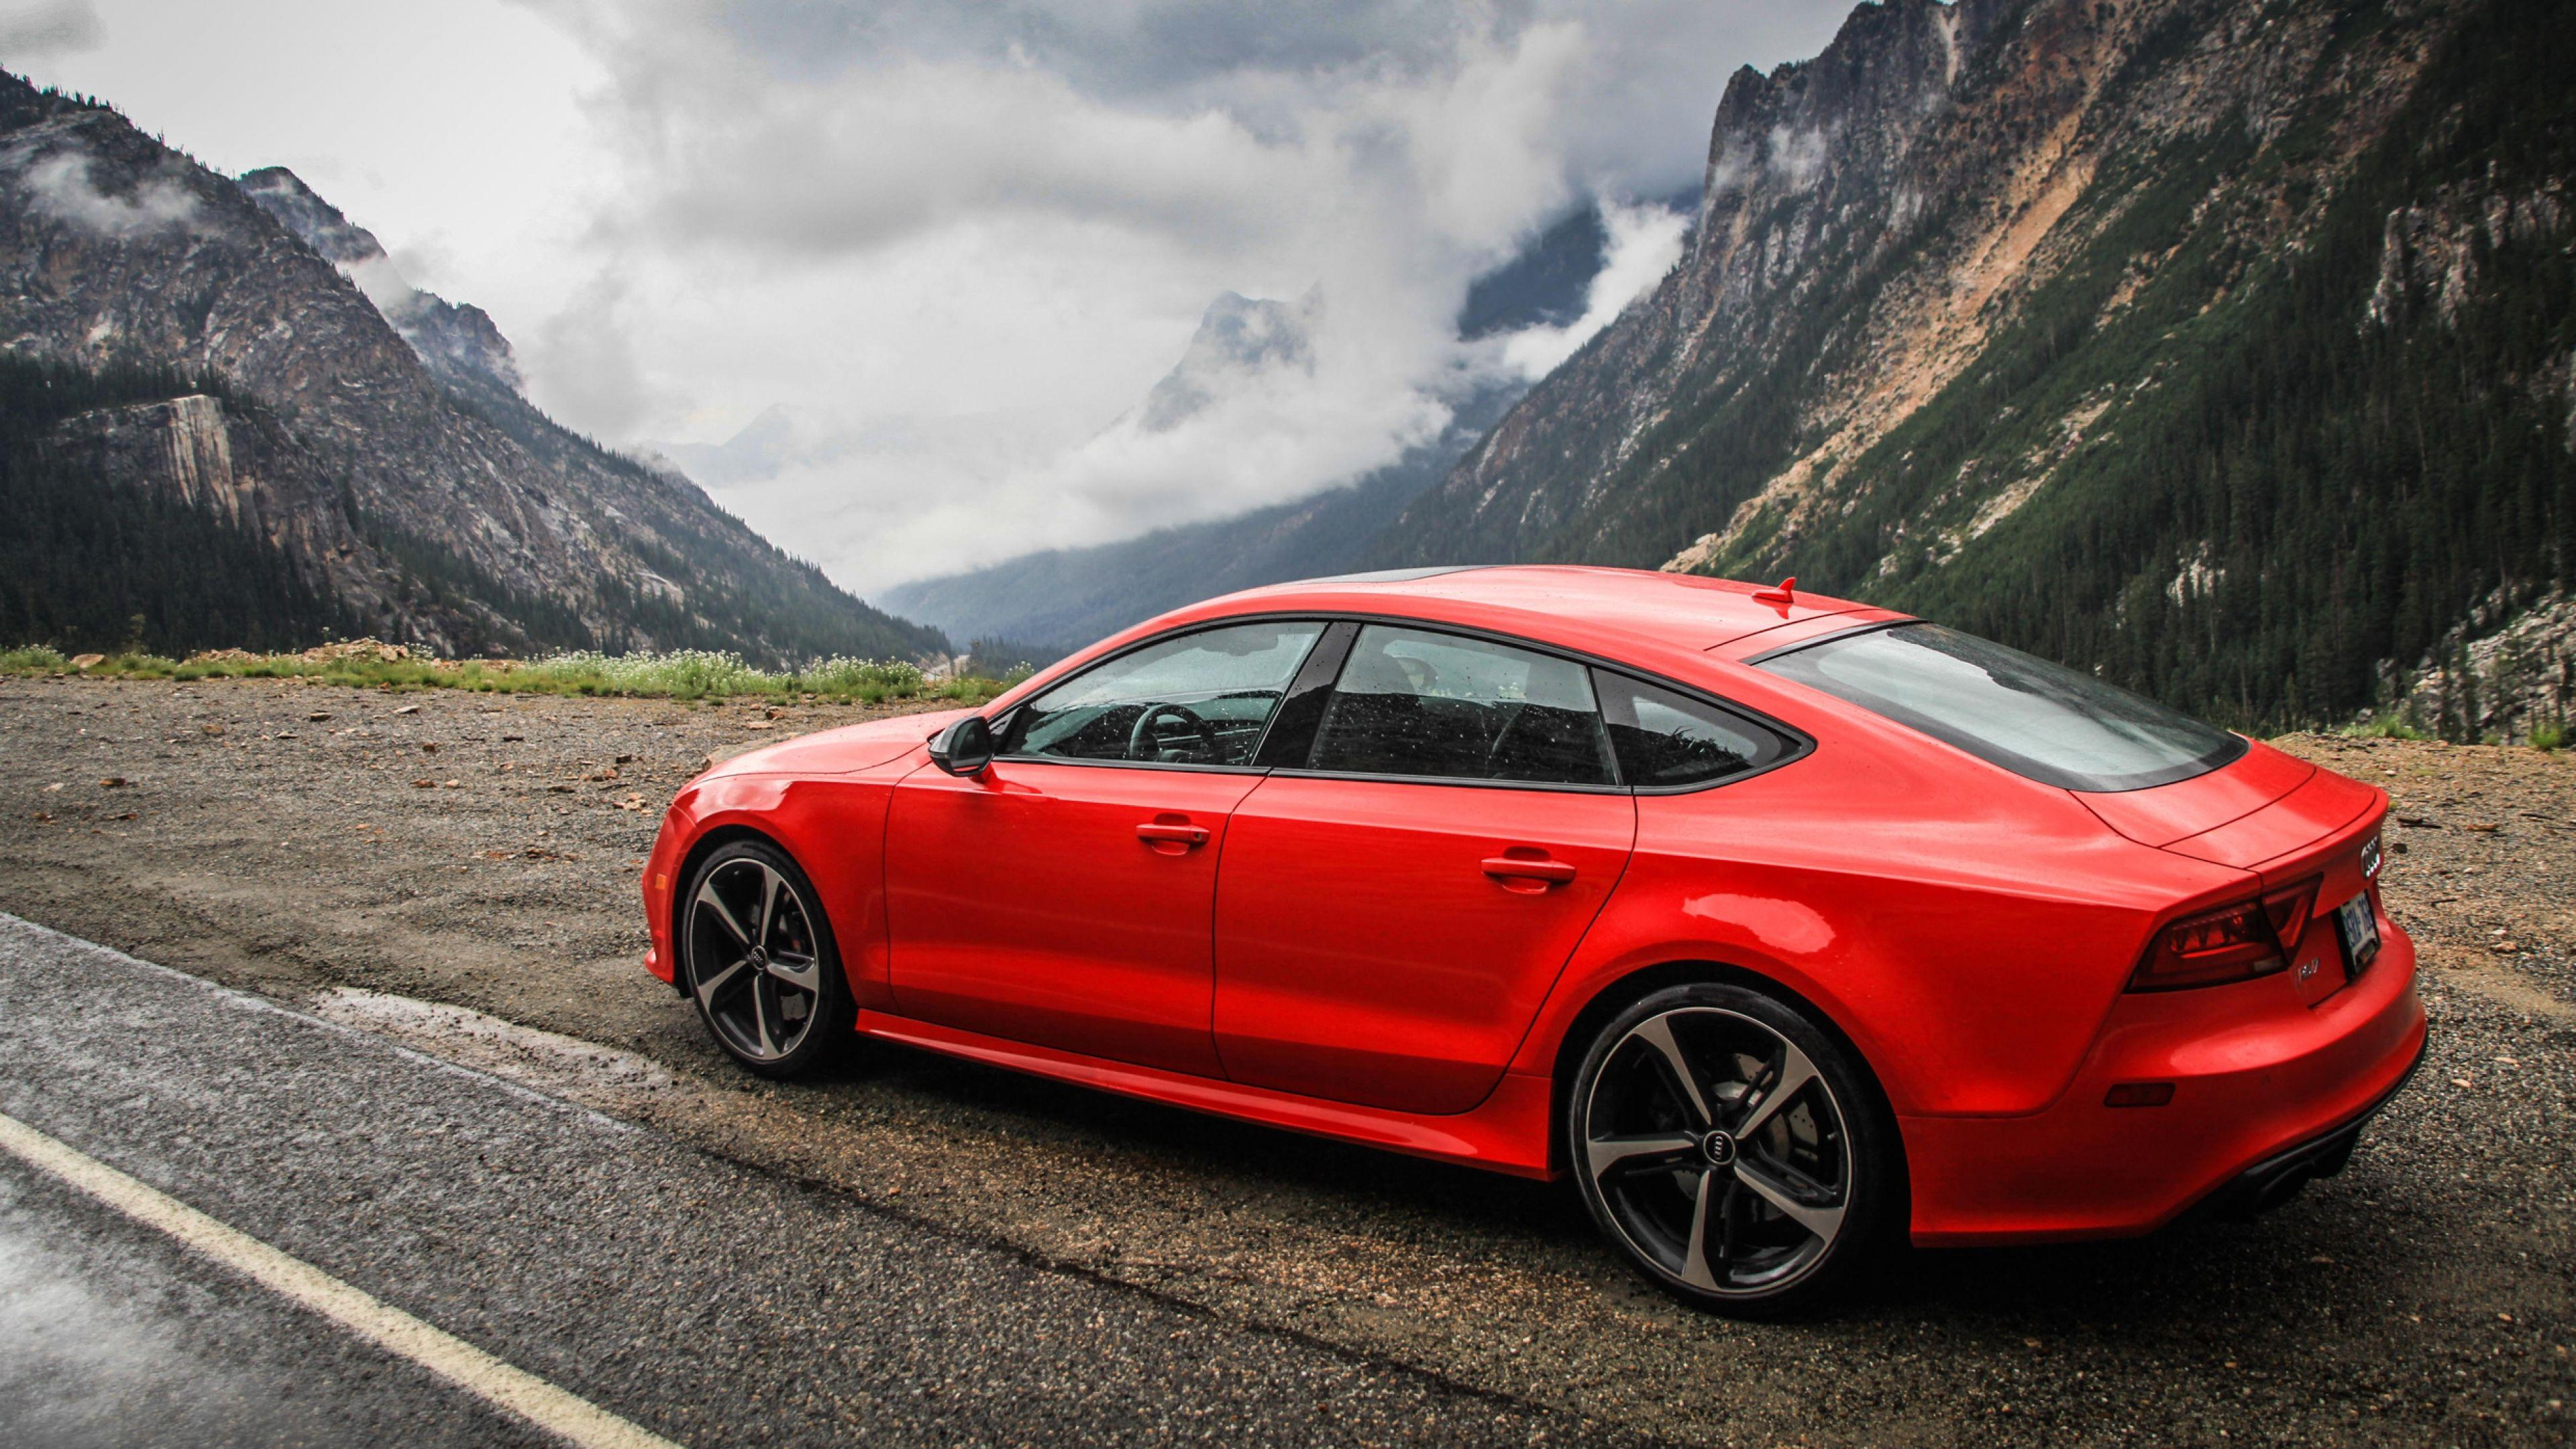 Download Wallpaper 3840x2160 Audi Rs7 Red Side View Mountain